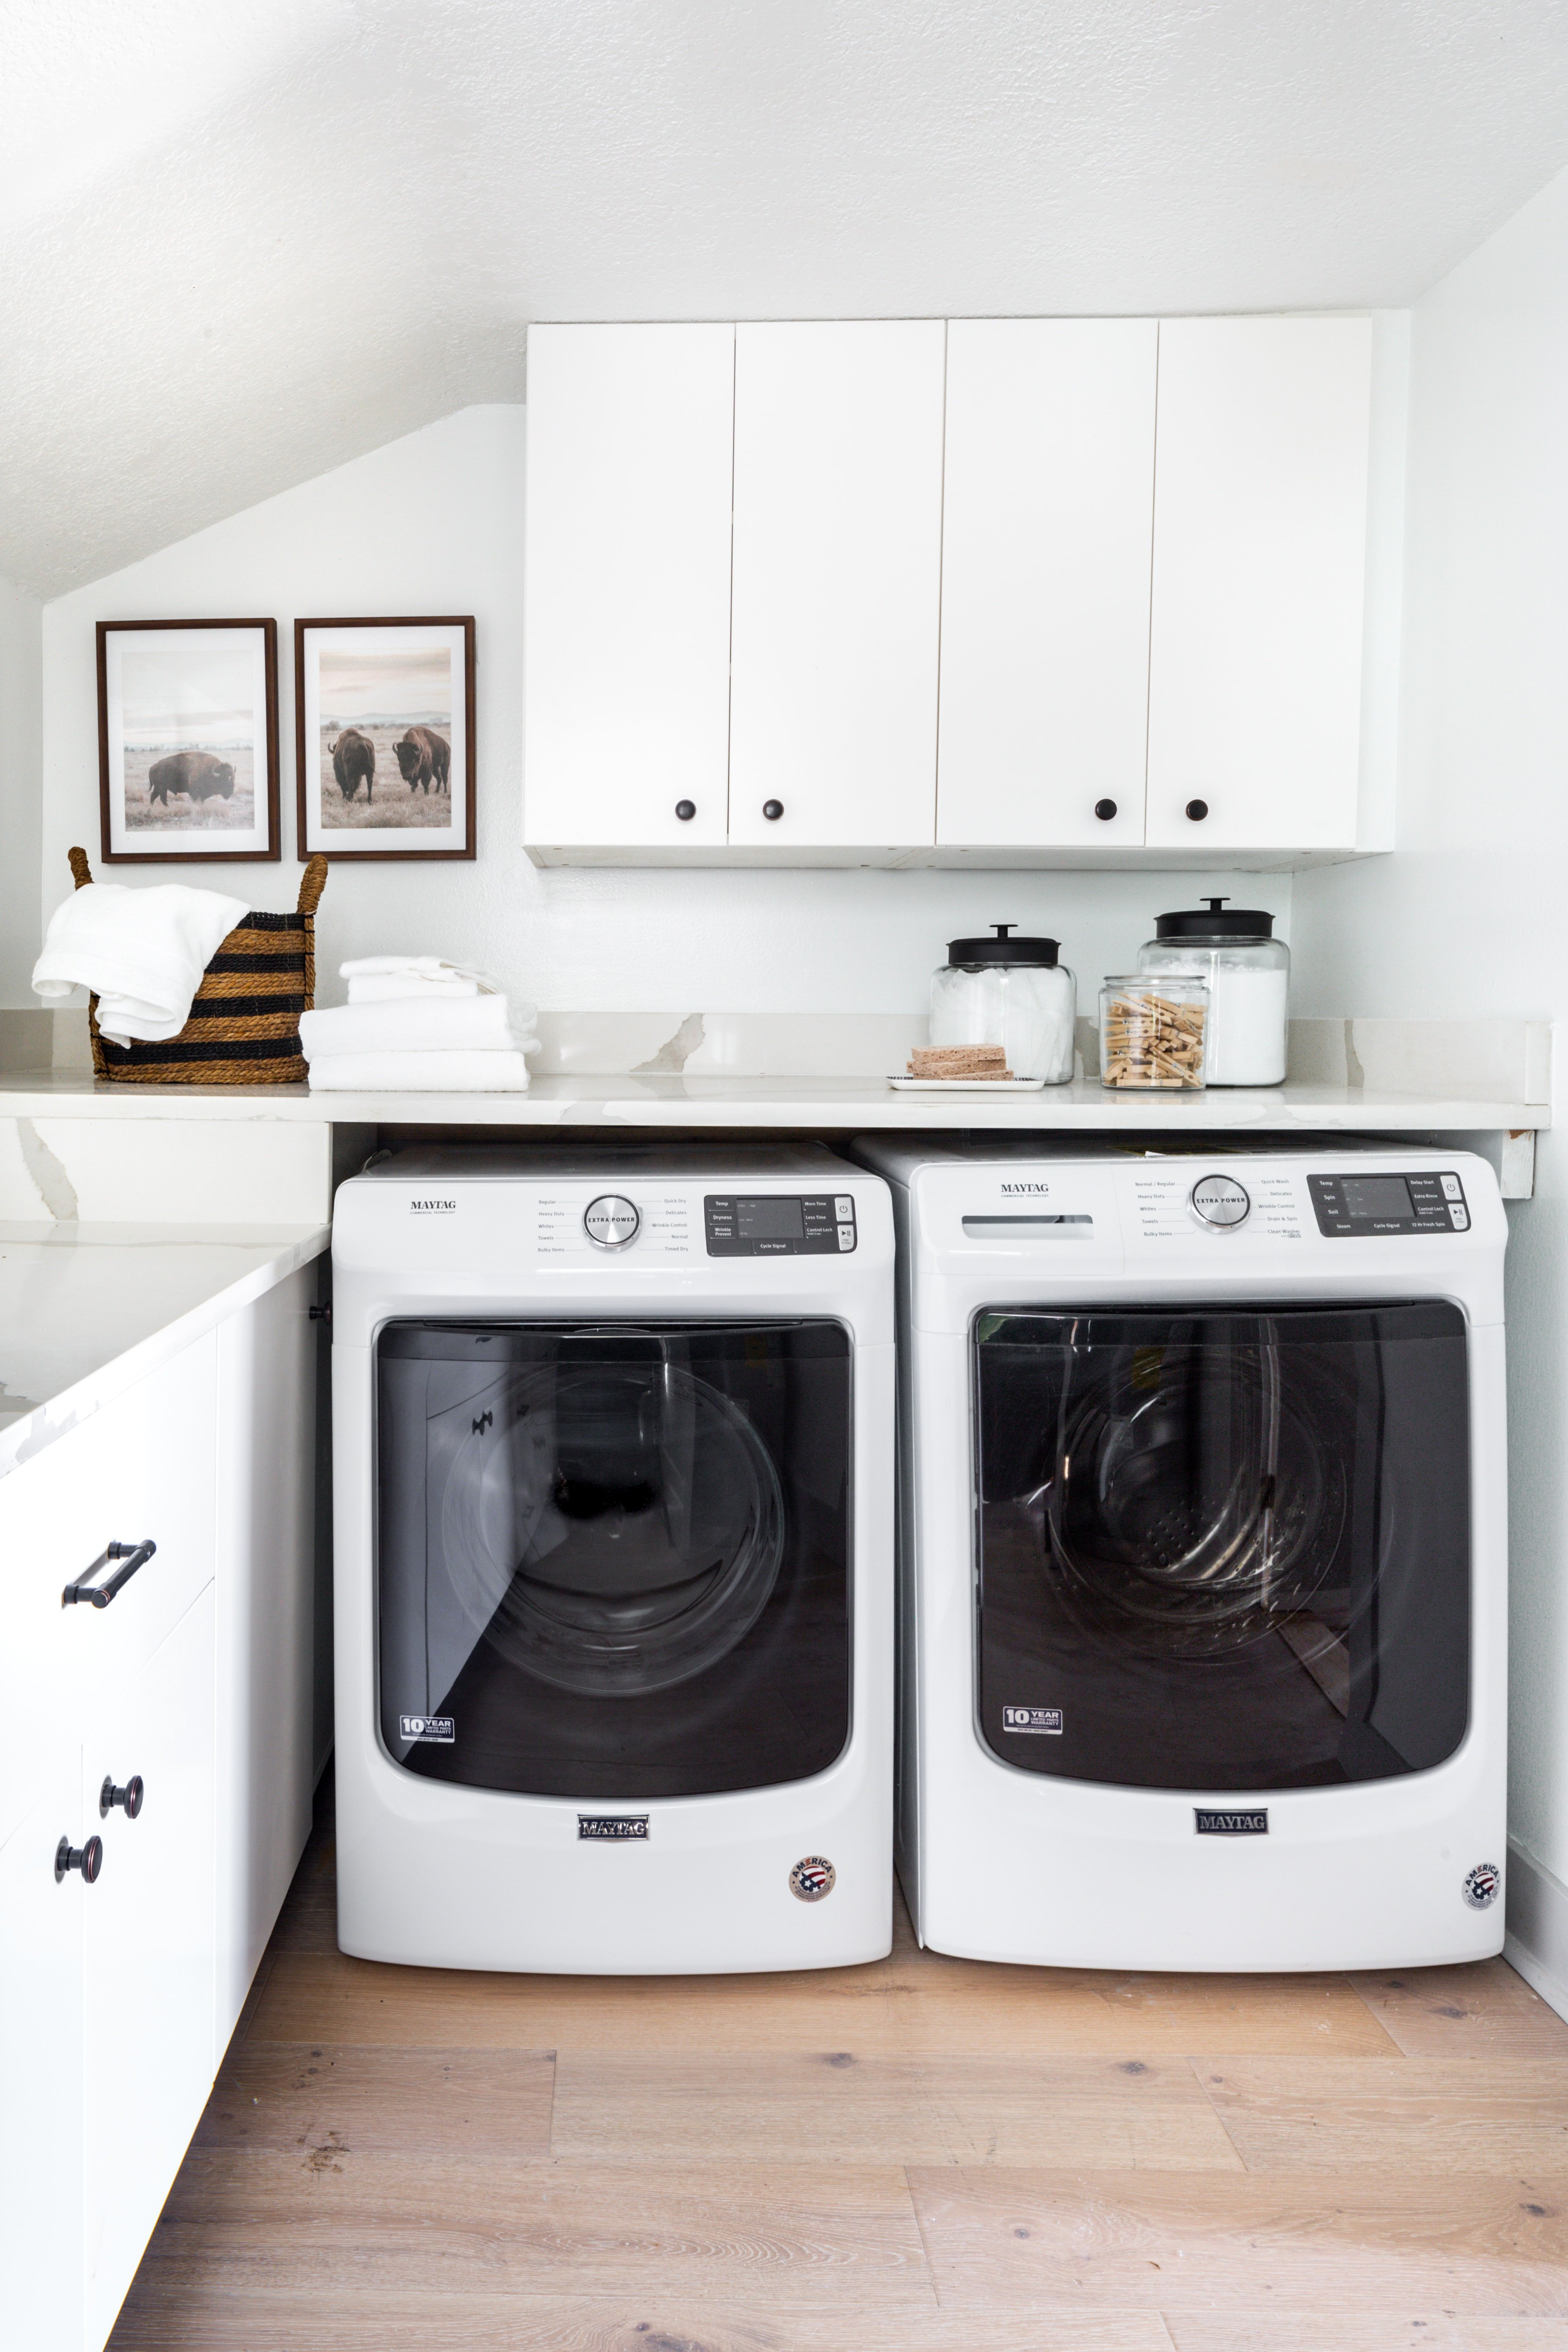 Laundry Room Refresh: 5 Ways To Make Your Space Look (And Work) Better - Bobby Berk